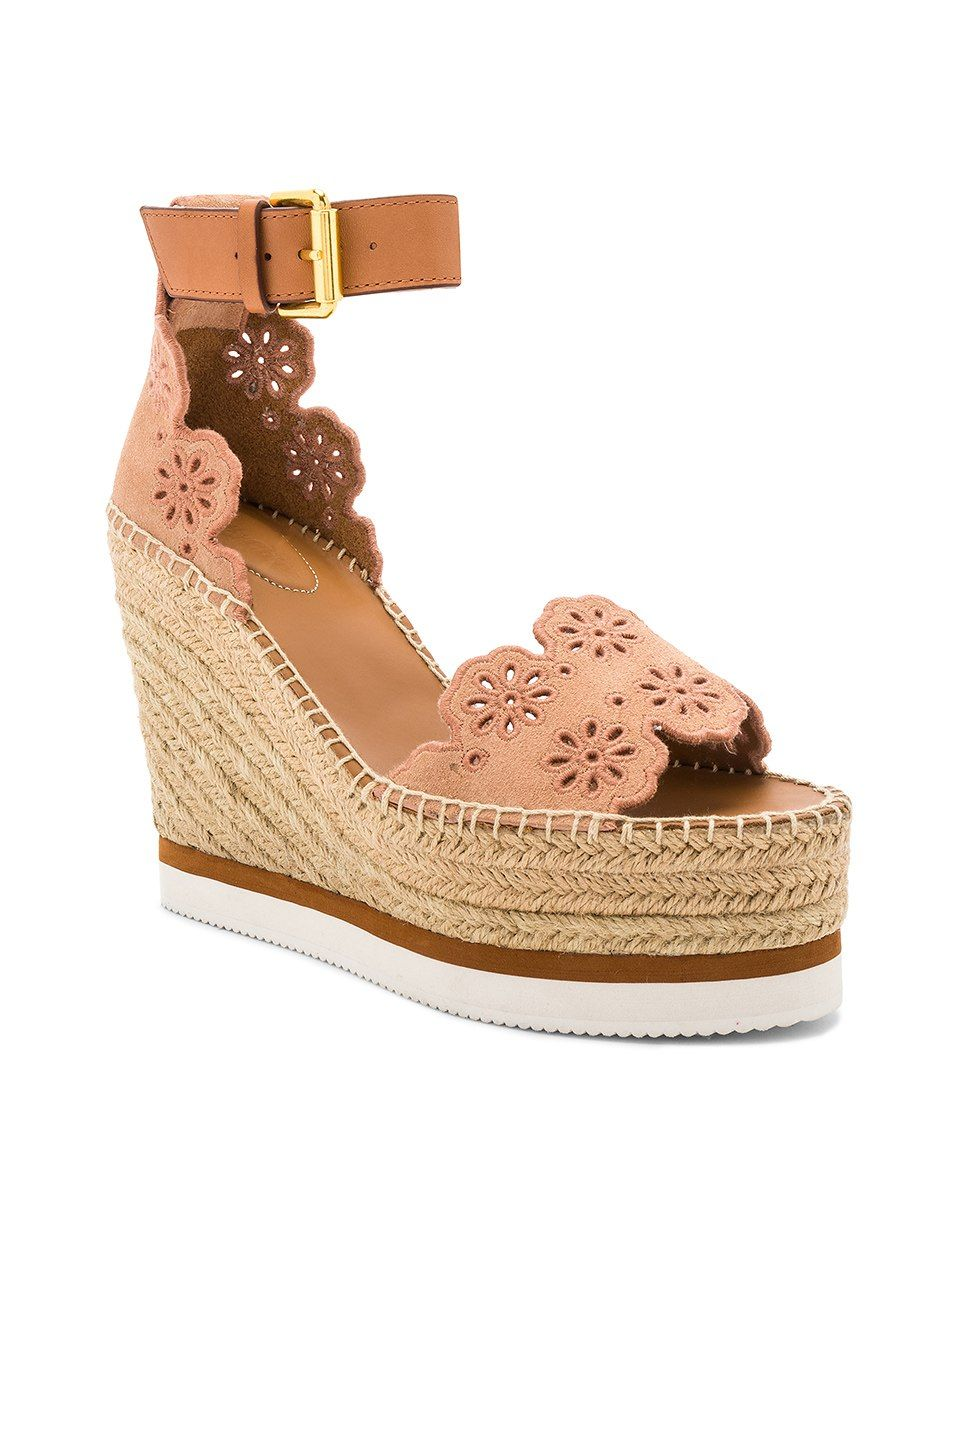 493d7d9cab7d See By Chloe Glyn Wedge Sandal in Cipria   Natural Calf